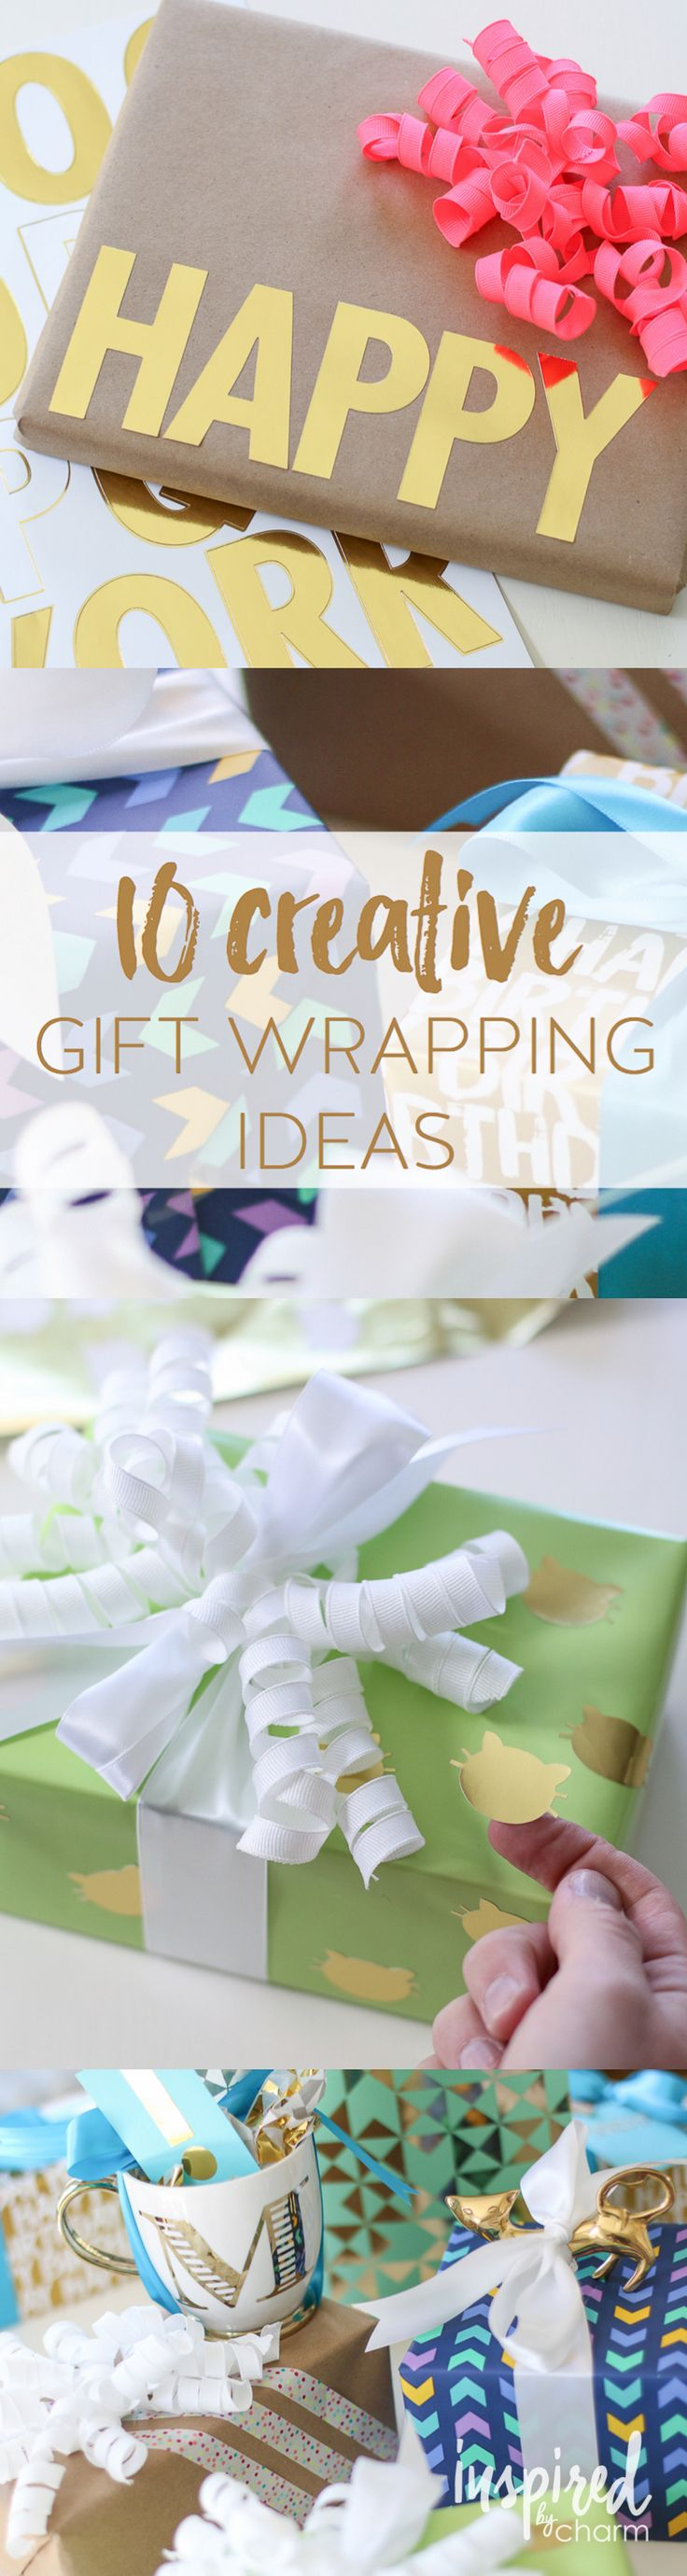 Unique and Creative Gift Wrapping Ideas. Great for birthdays or any celebration.